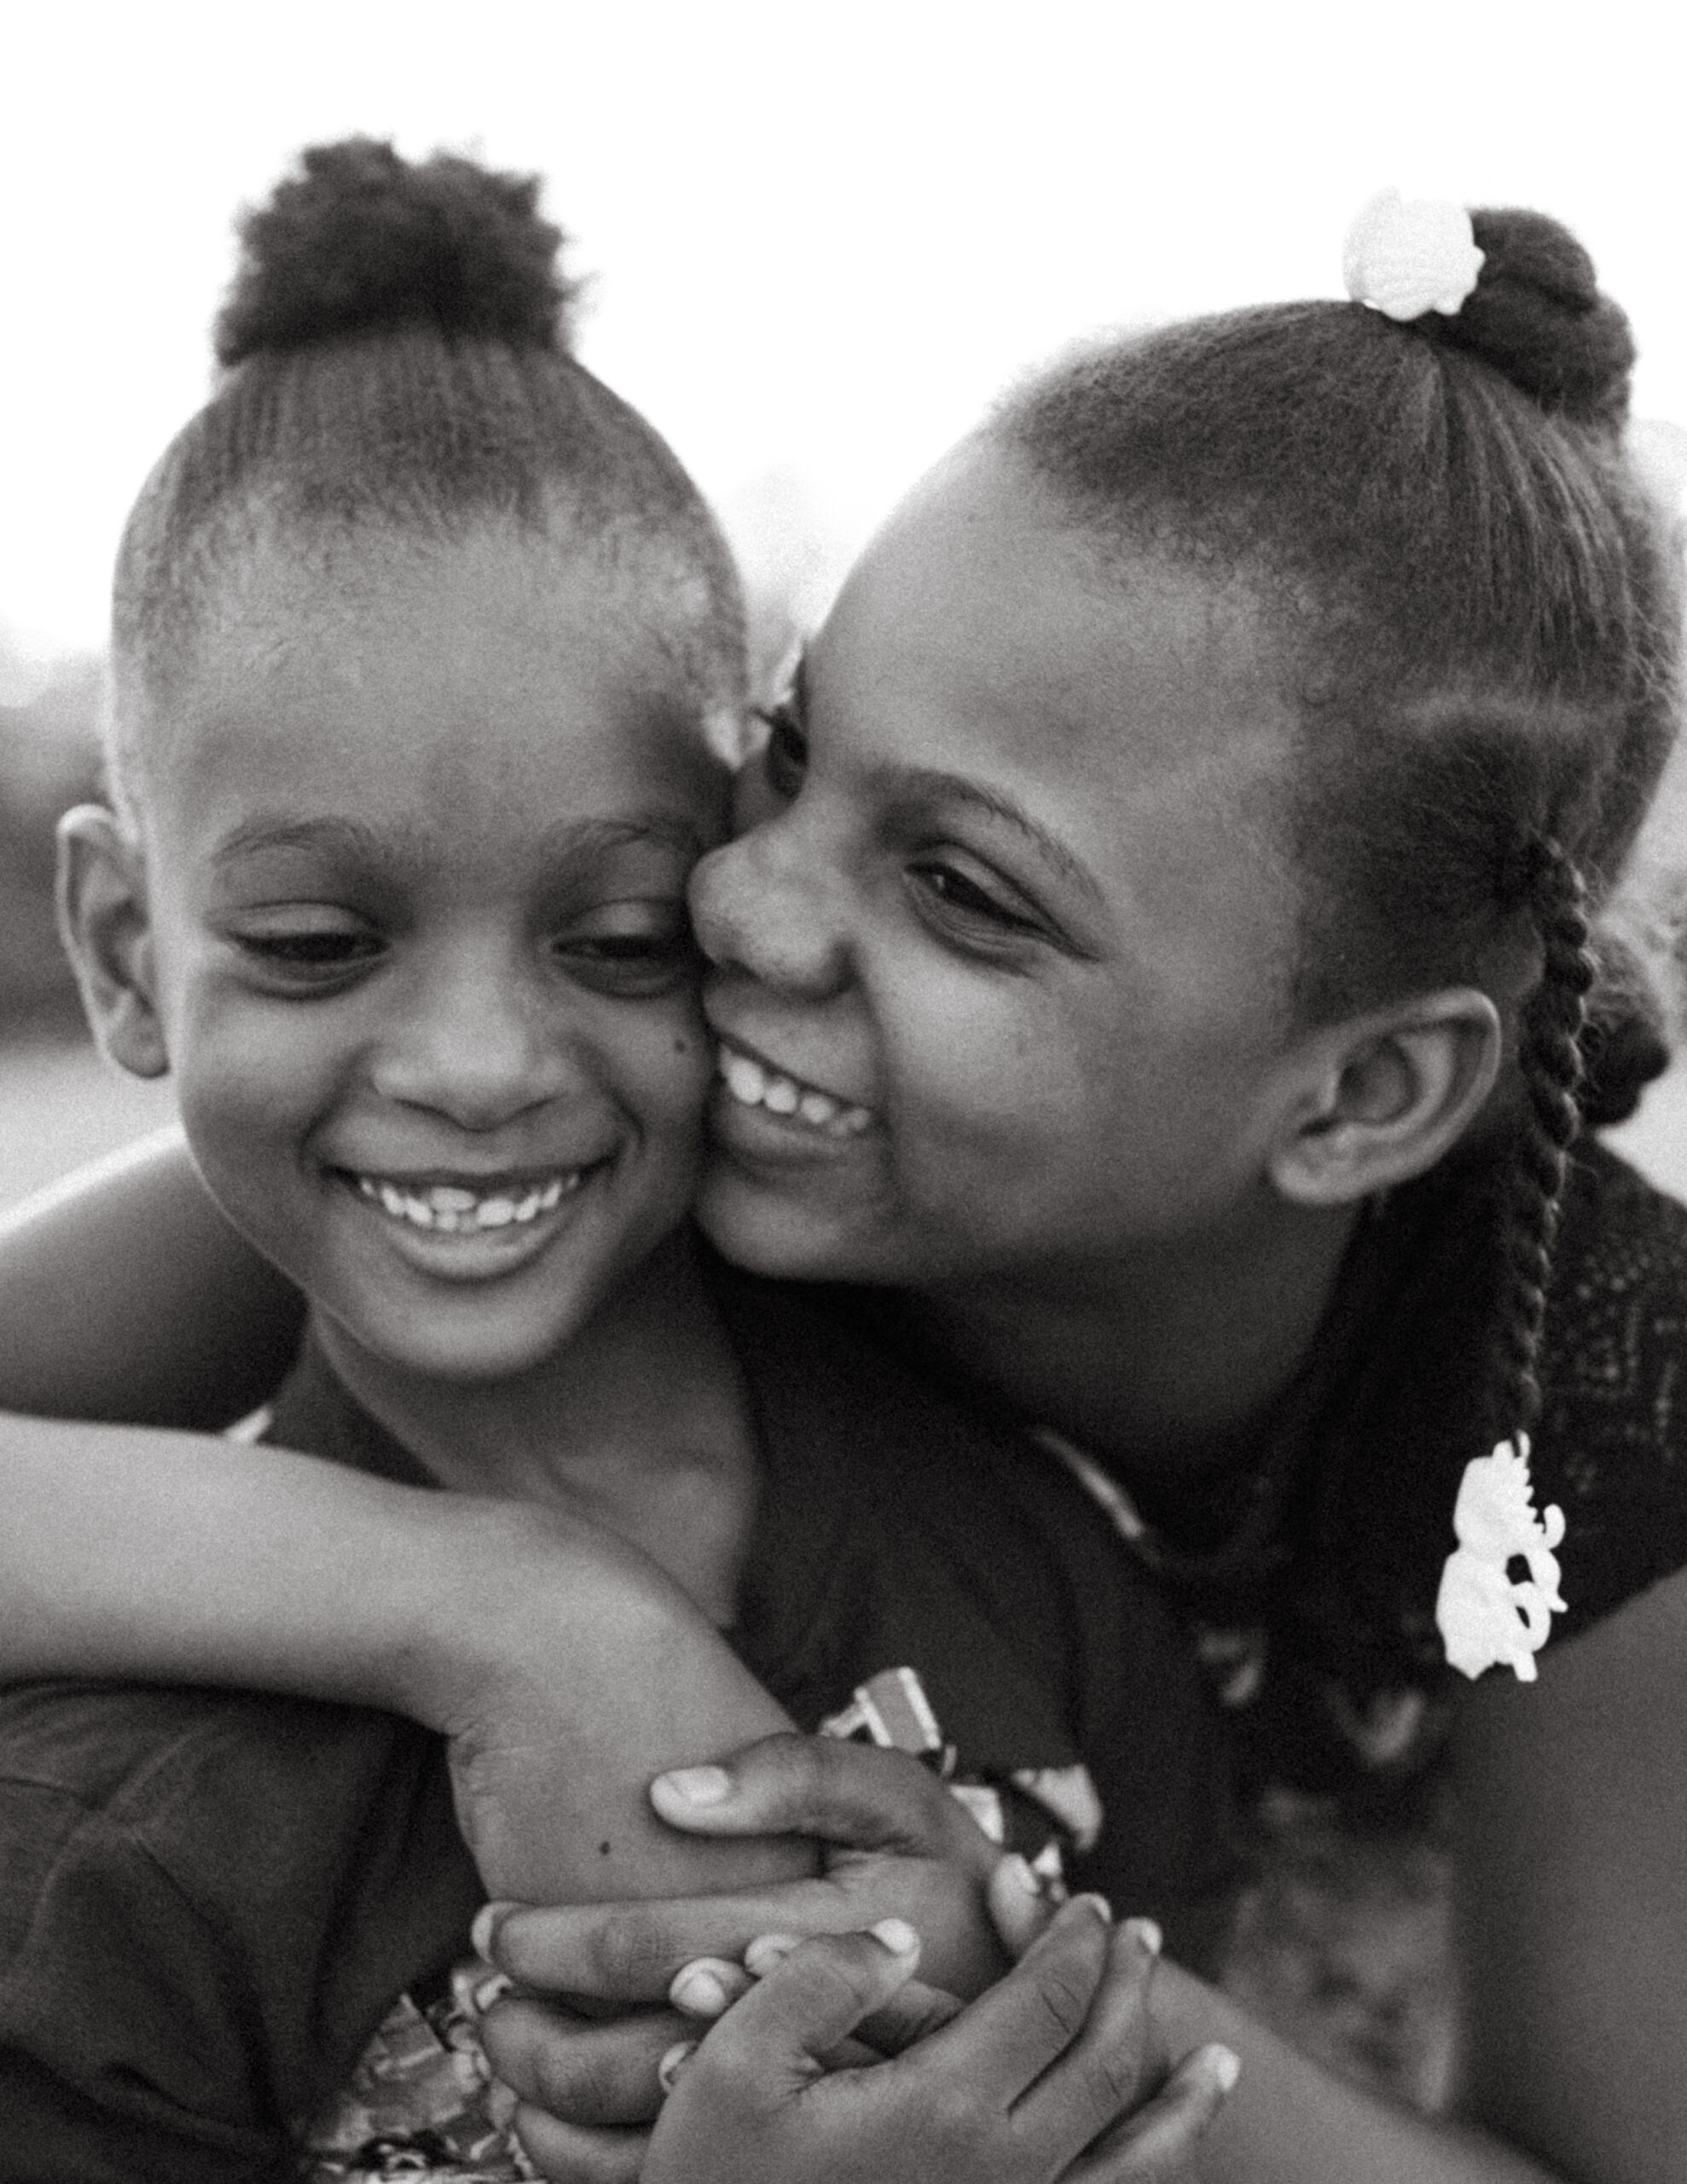 Brother and sister hug one another while laughing in Port-au-Prince, Haiti